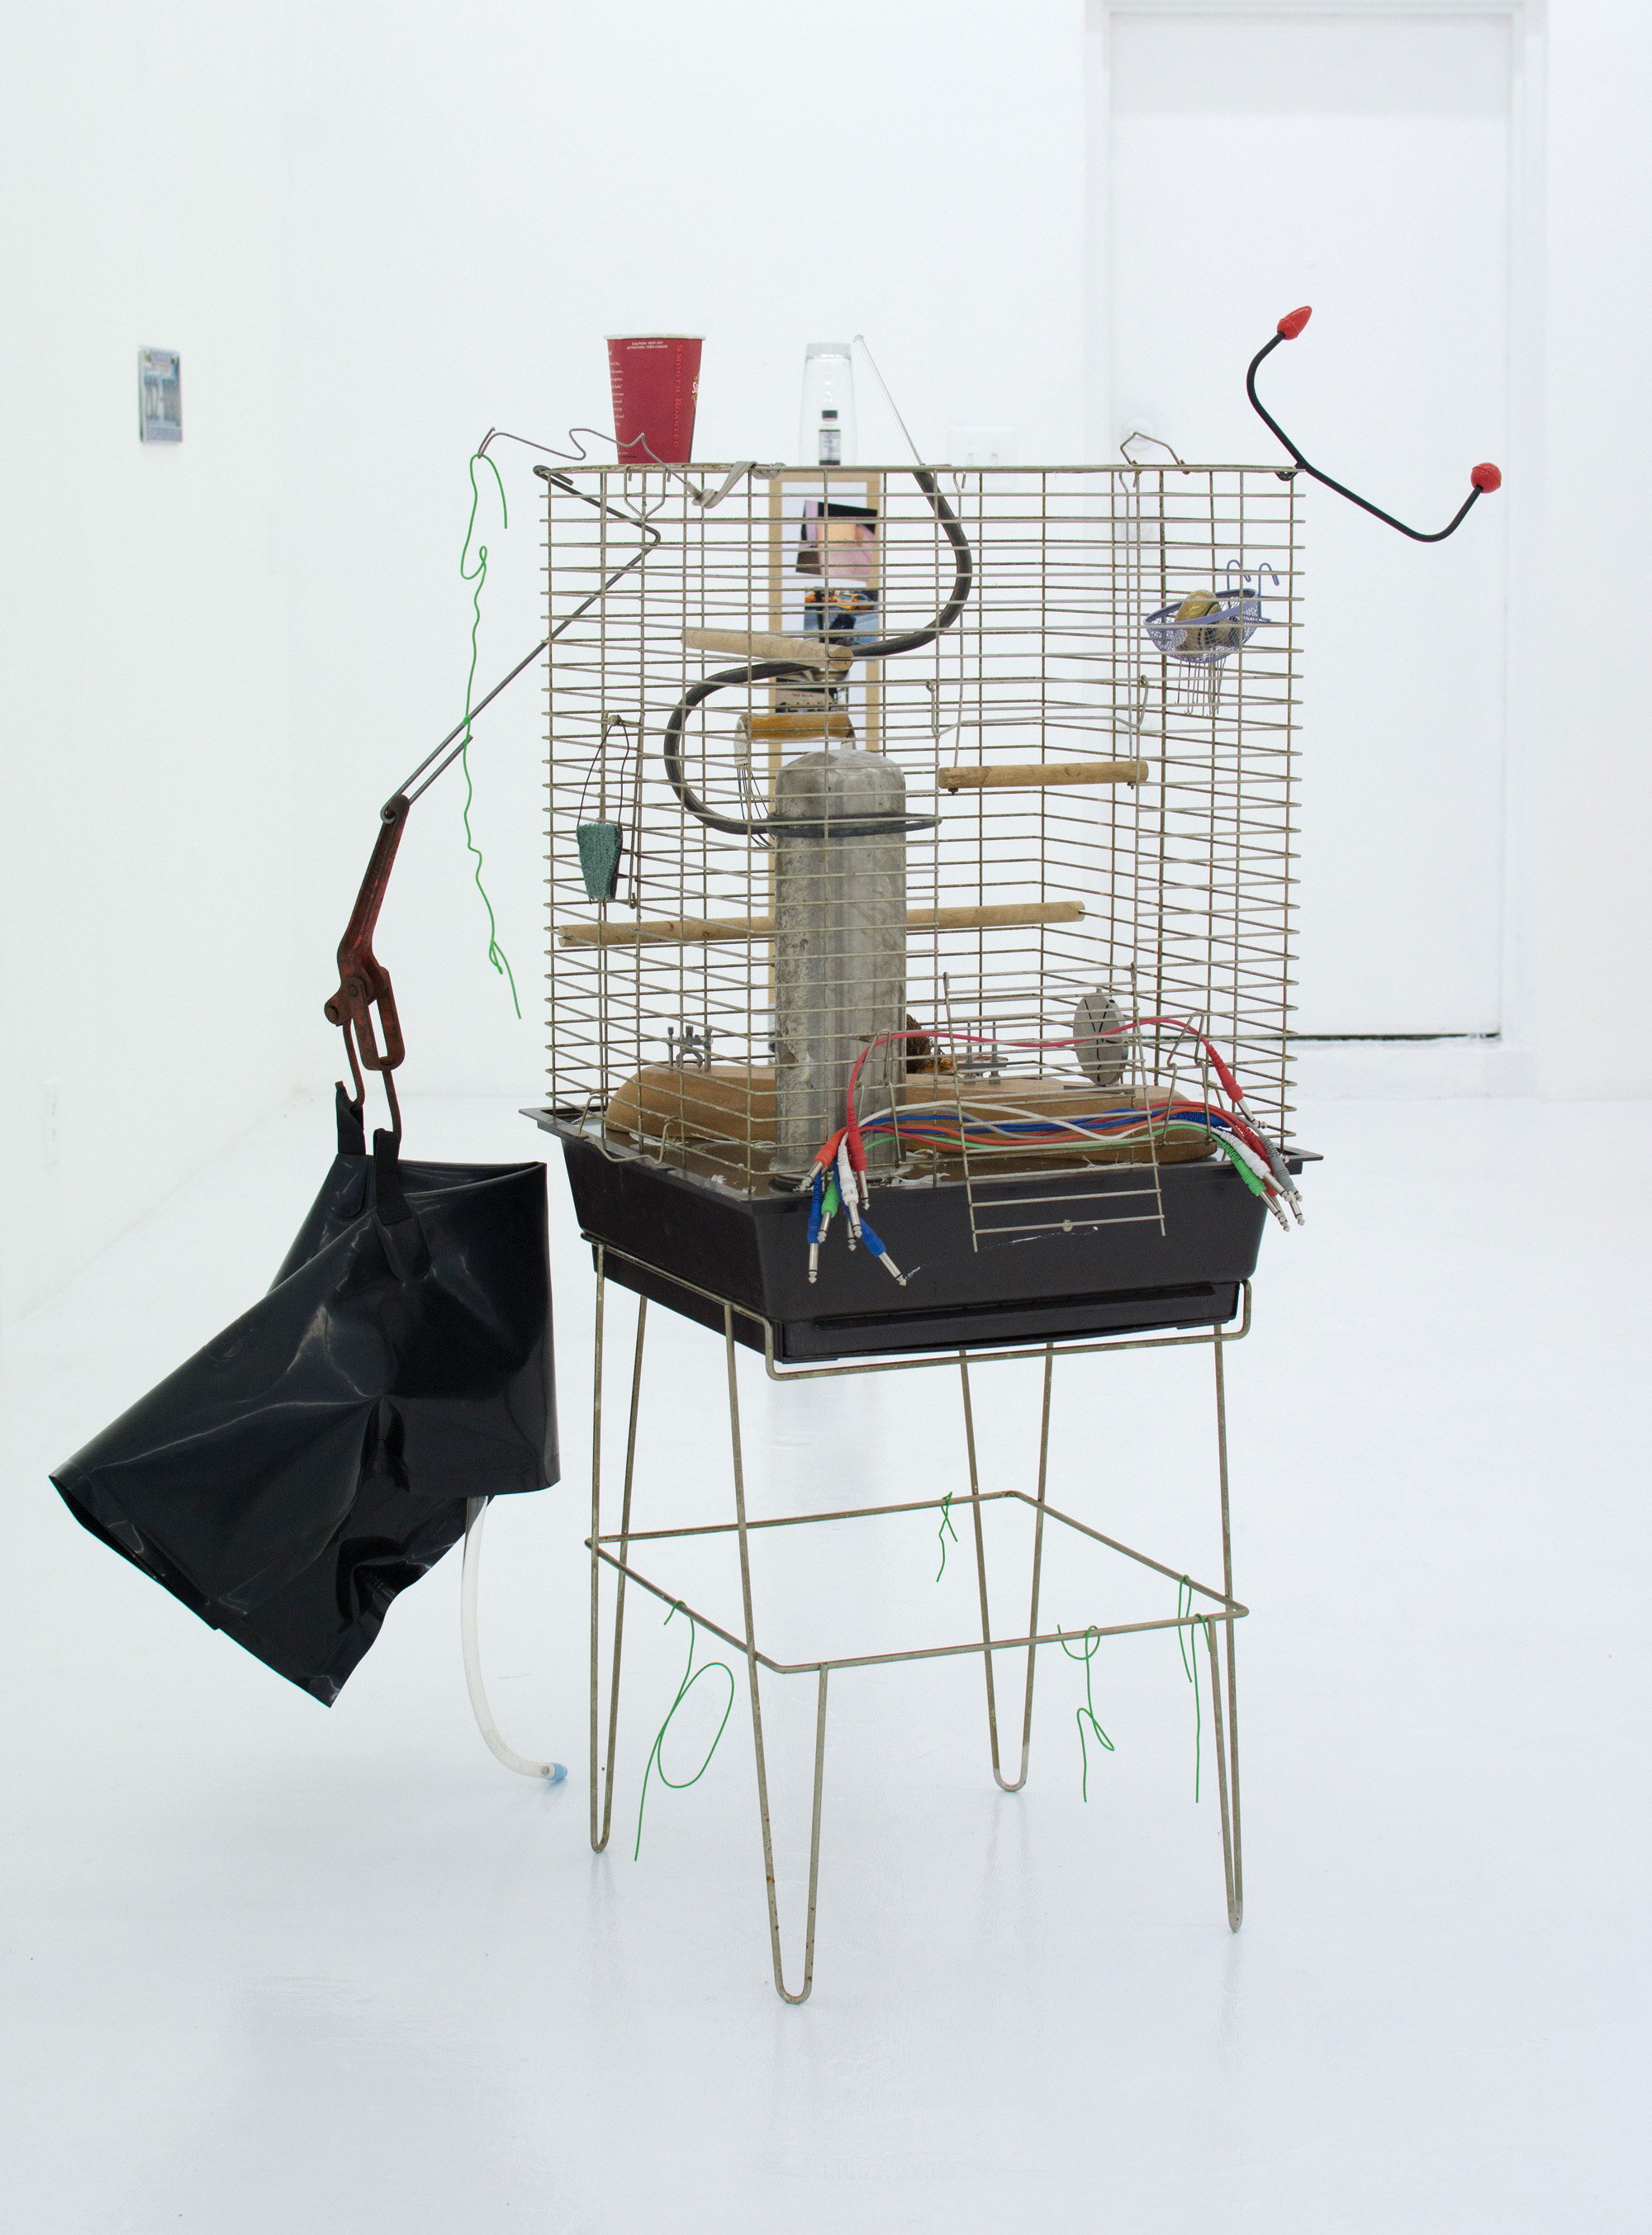 GEORGIA DICKIE    Today was a rare day (Many Minutes of Fun) , 2016, Metal bird cage, glass, wood perches and swing, blood, auxiliary cables, found photographs, discarded canary feathers, doorknob, glass stirring rod, resurrection plant, coffee cup, PVC coated wire, various found objects